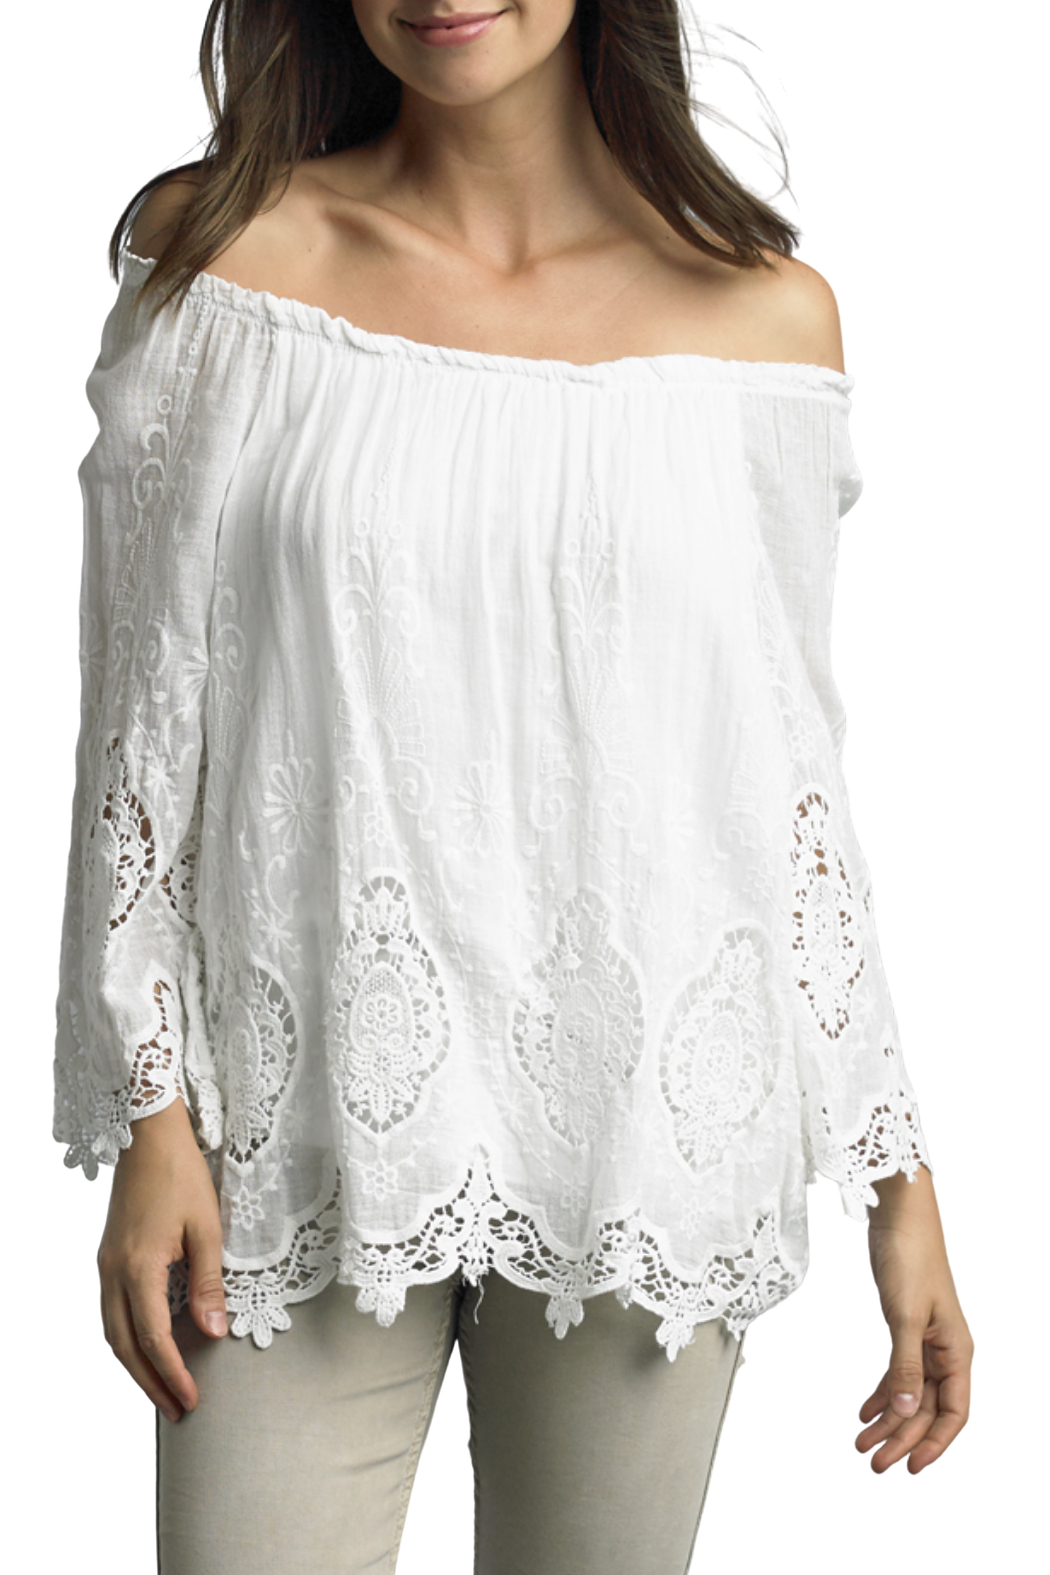 Tempo Paris  Cotton Embroidered Date Night Top - Main Image